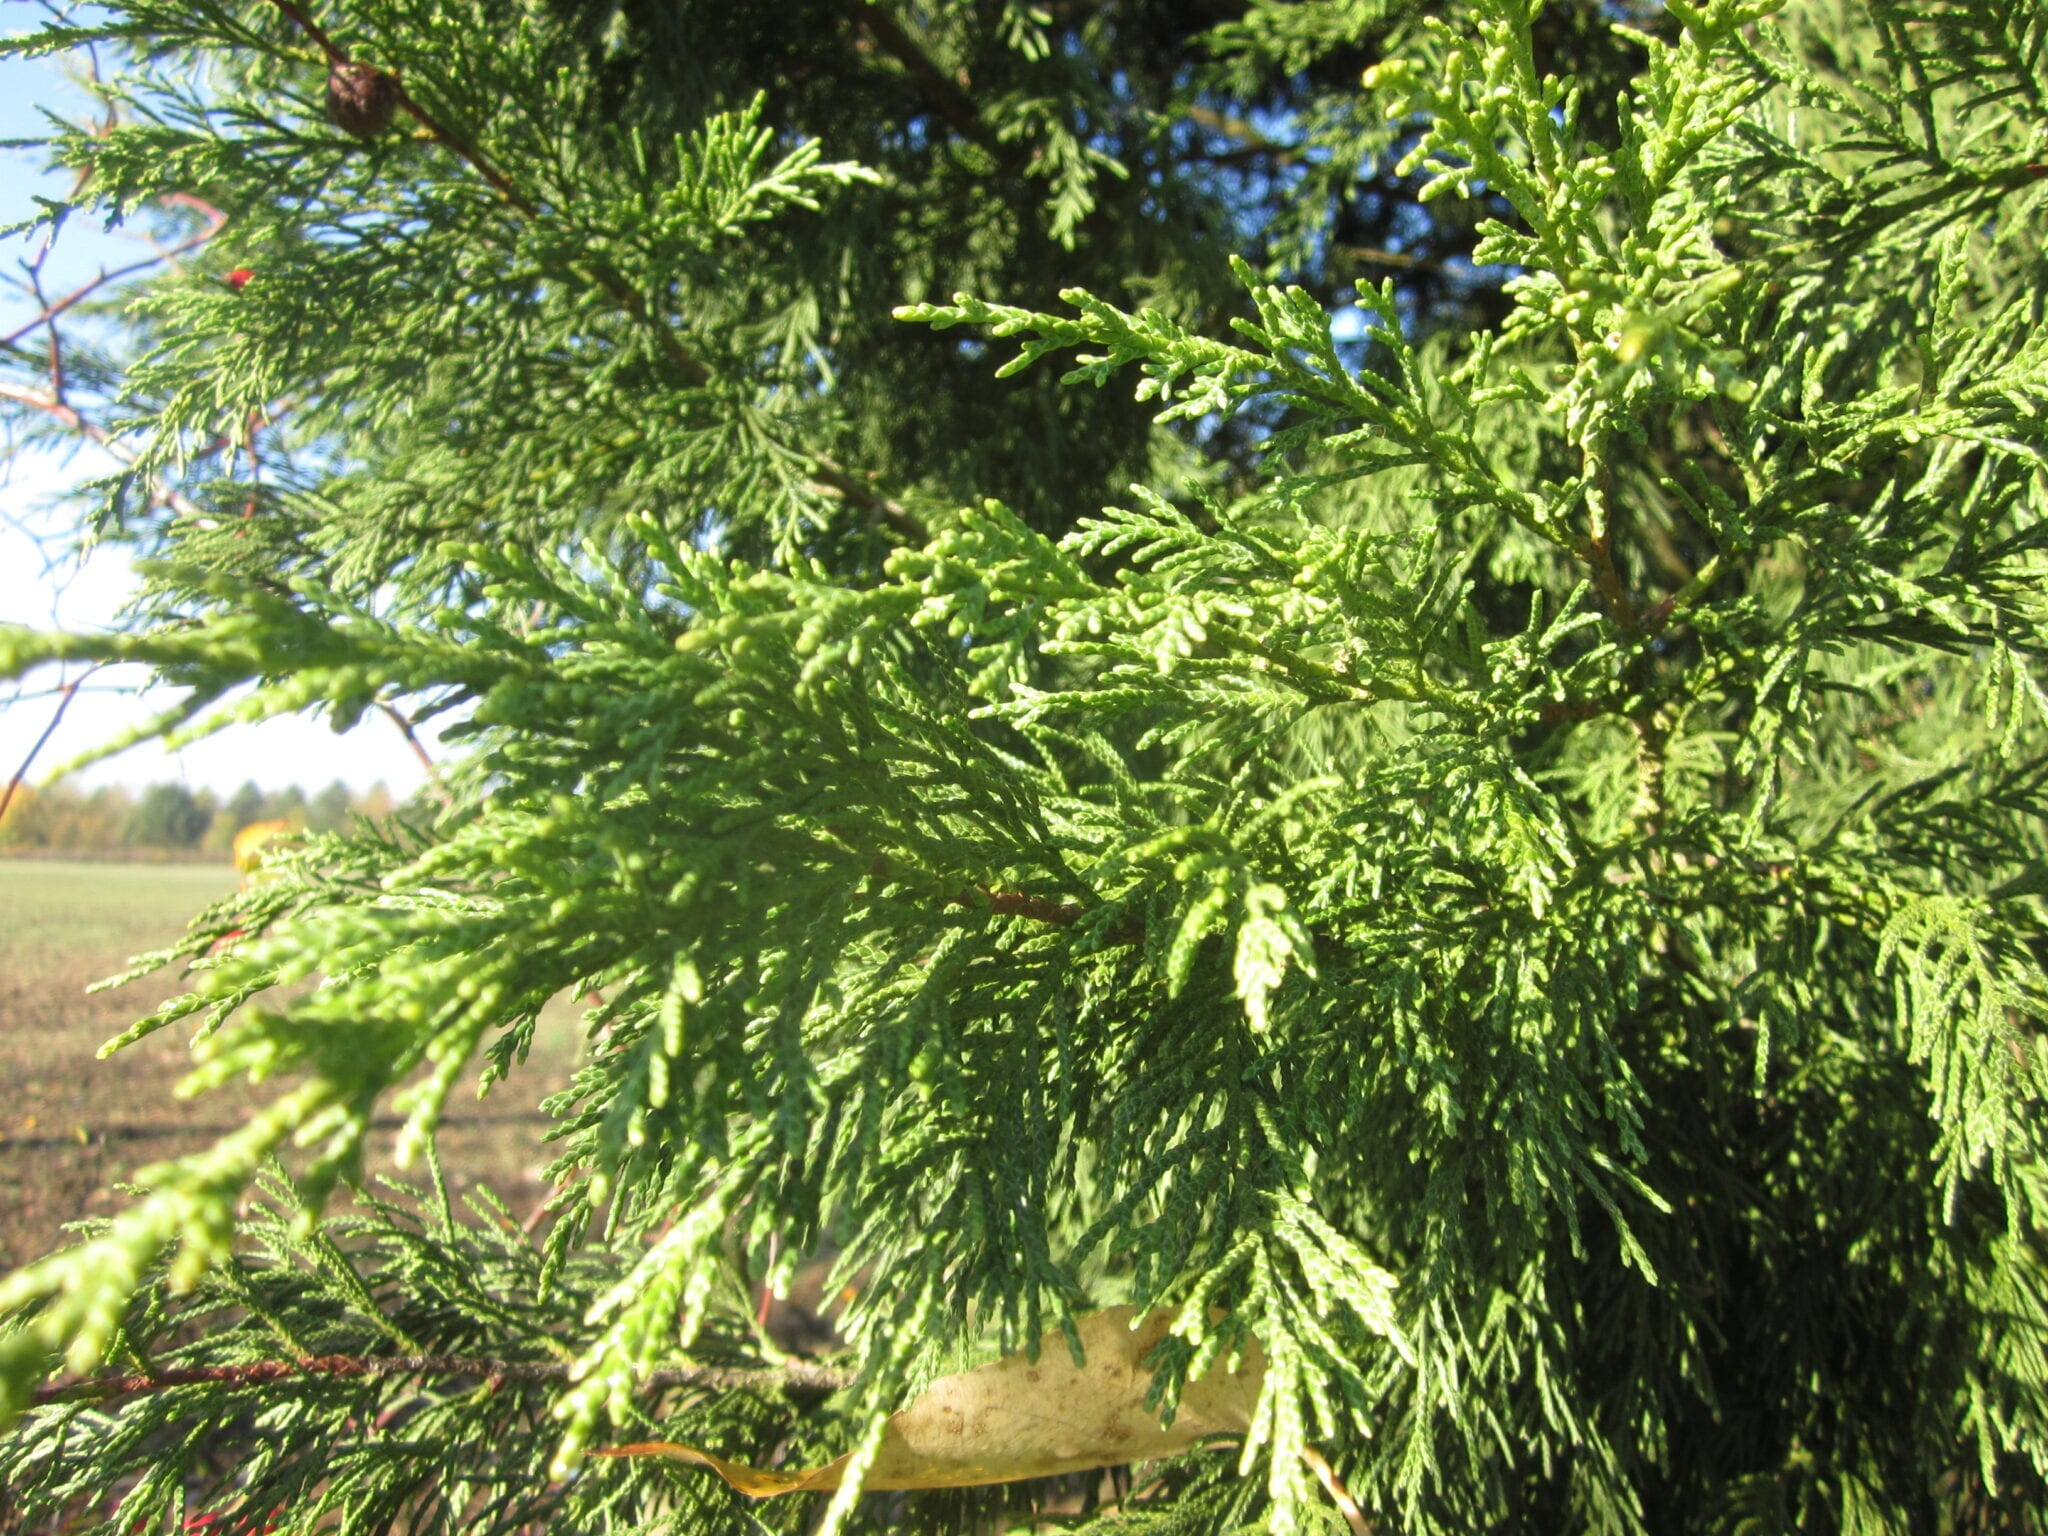 Leyland Cypress shoots and leaves